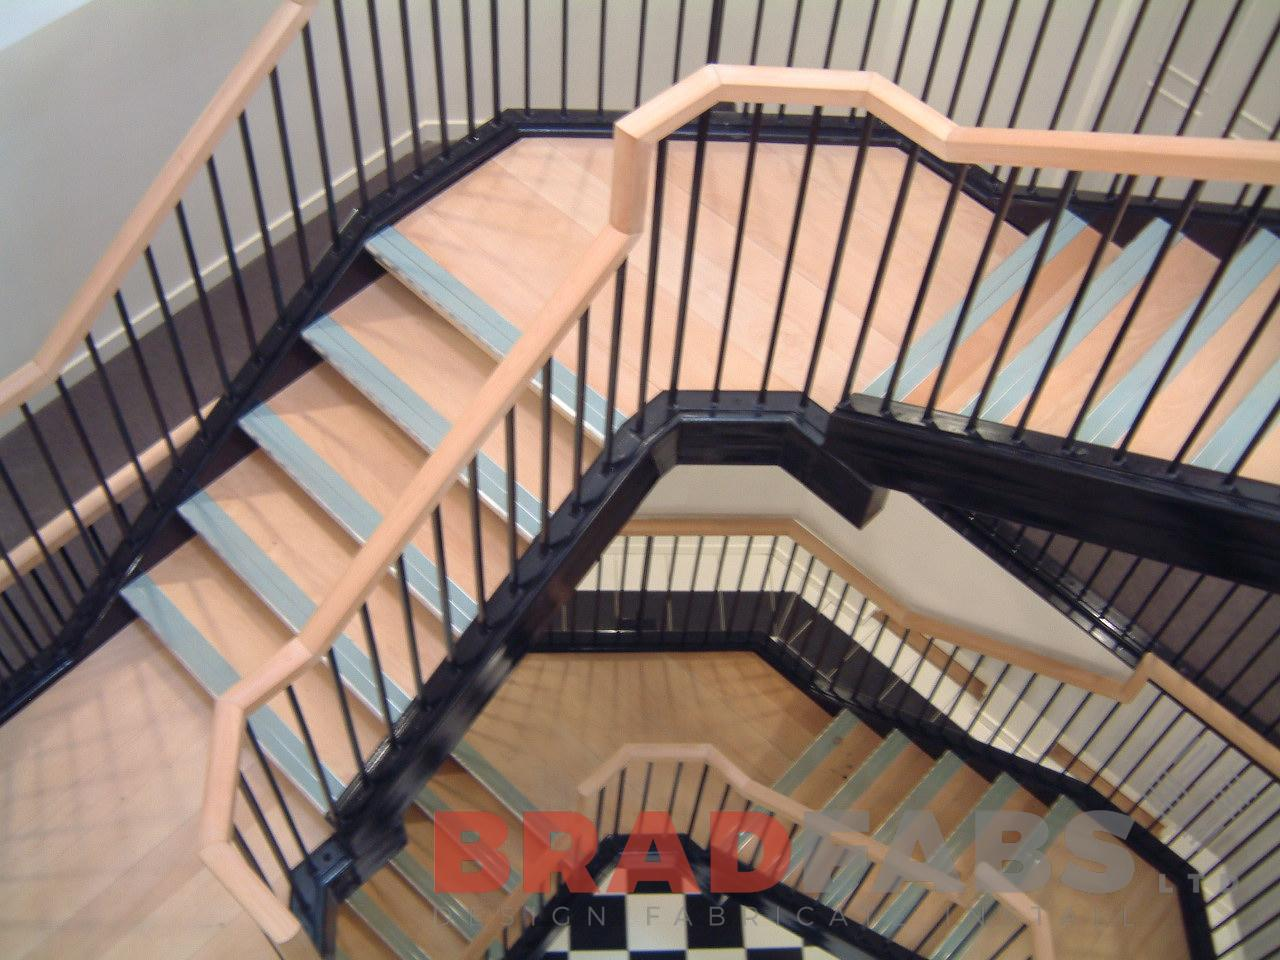 Bradfabs is one of the only few companies that possess the skills to make a curved steel staircase